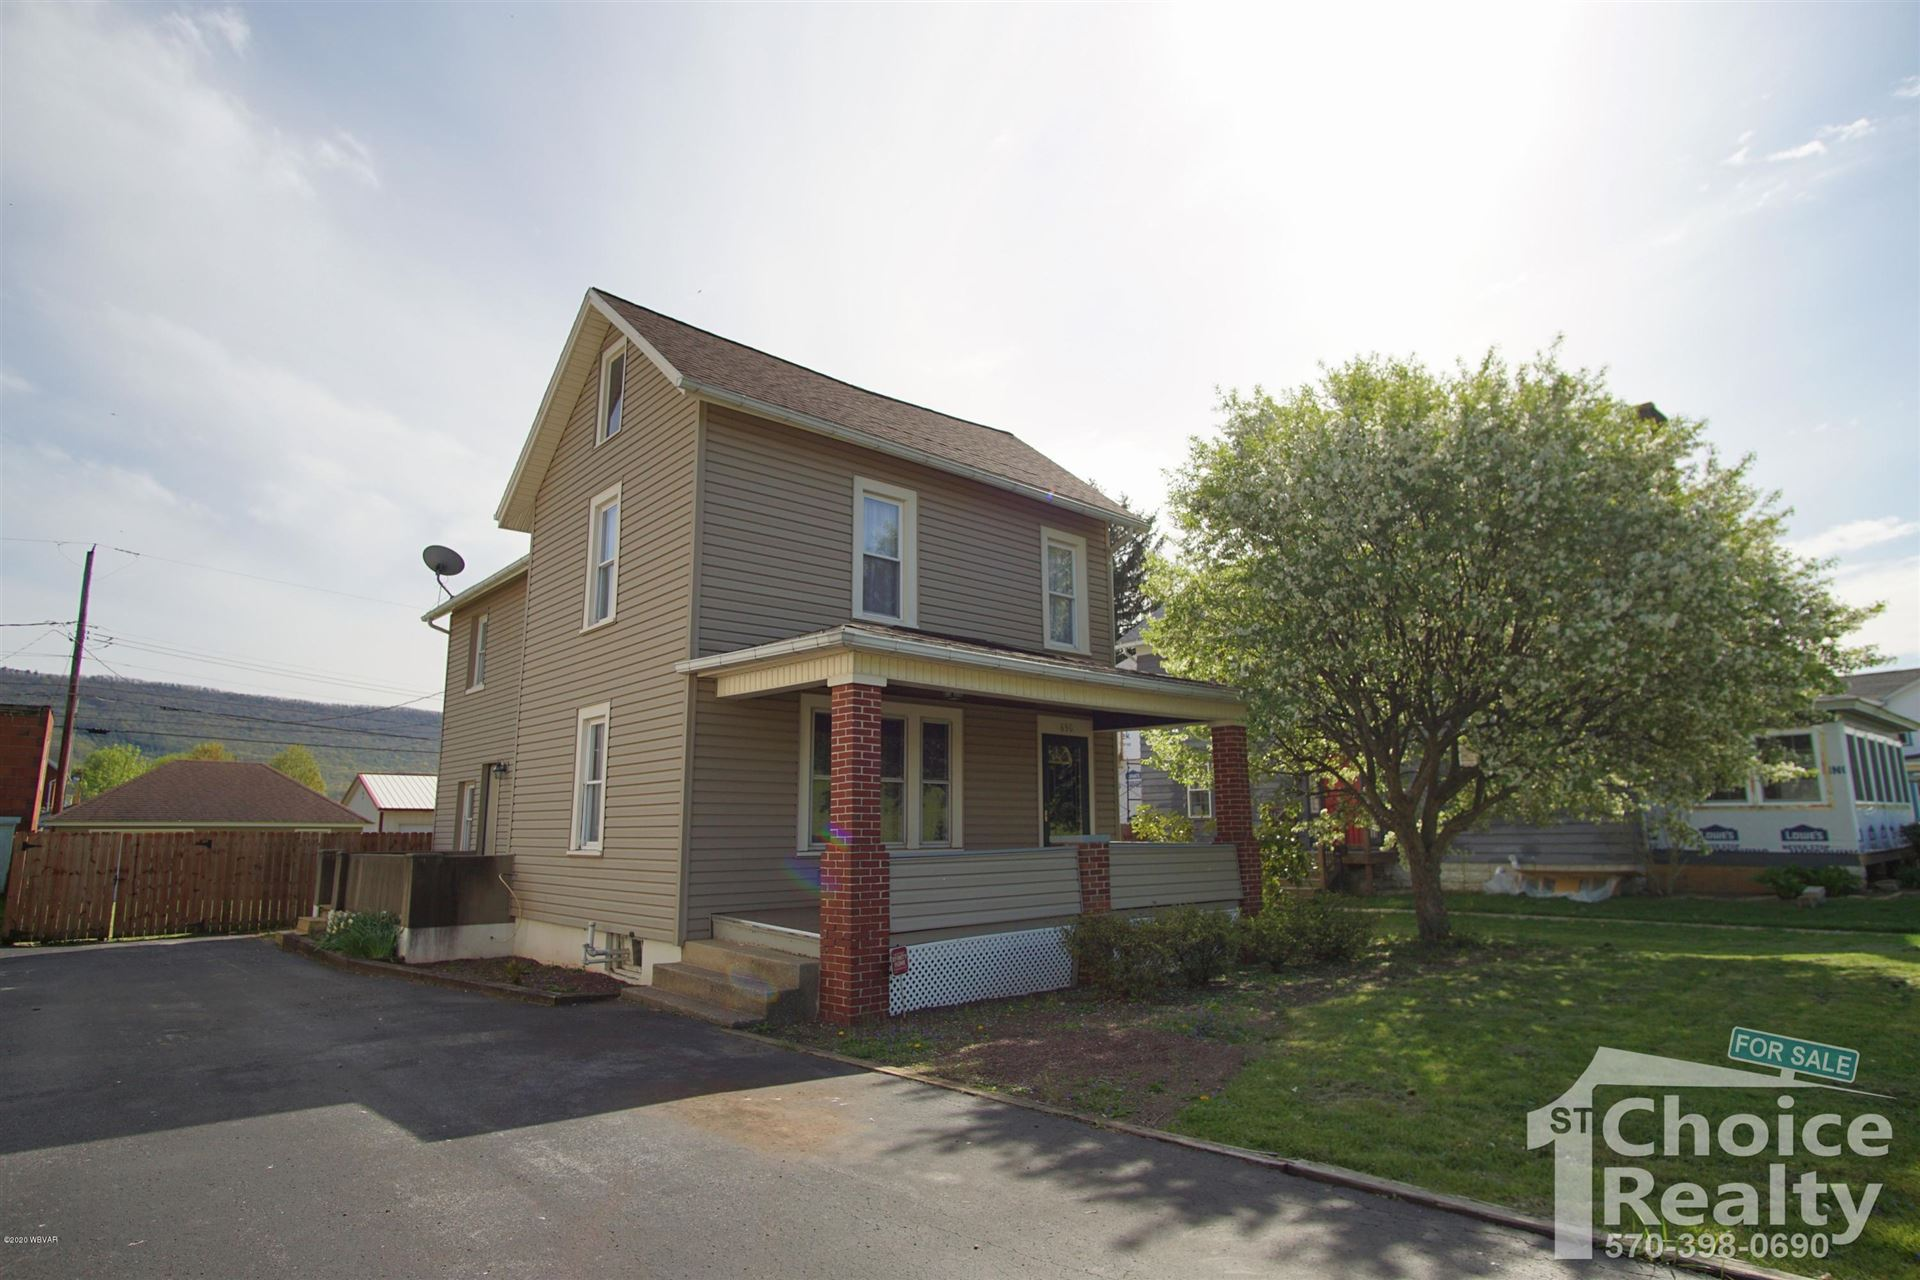 650 E WATER STREET, Lock Haven, PA 17745 - #: WB-89986